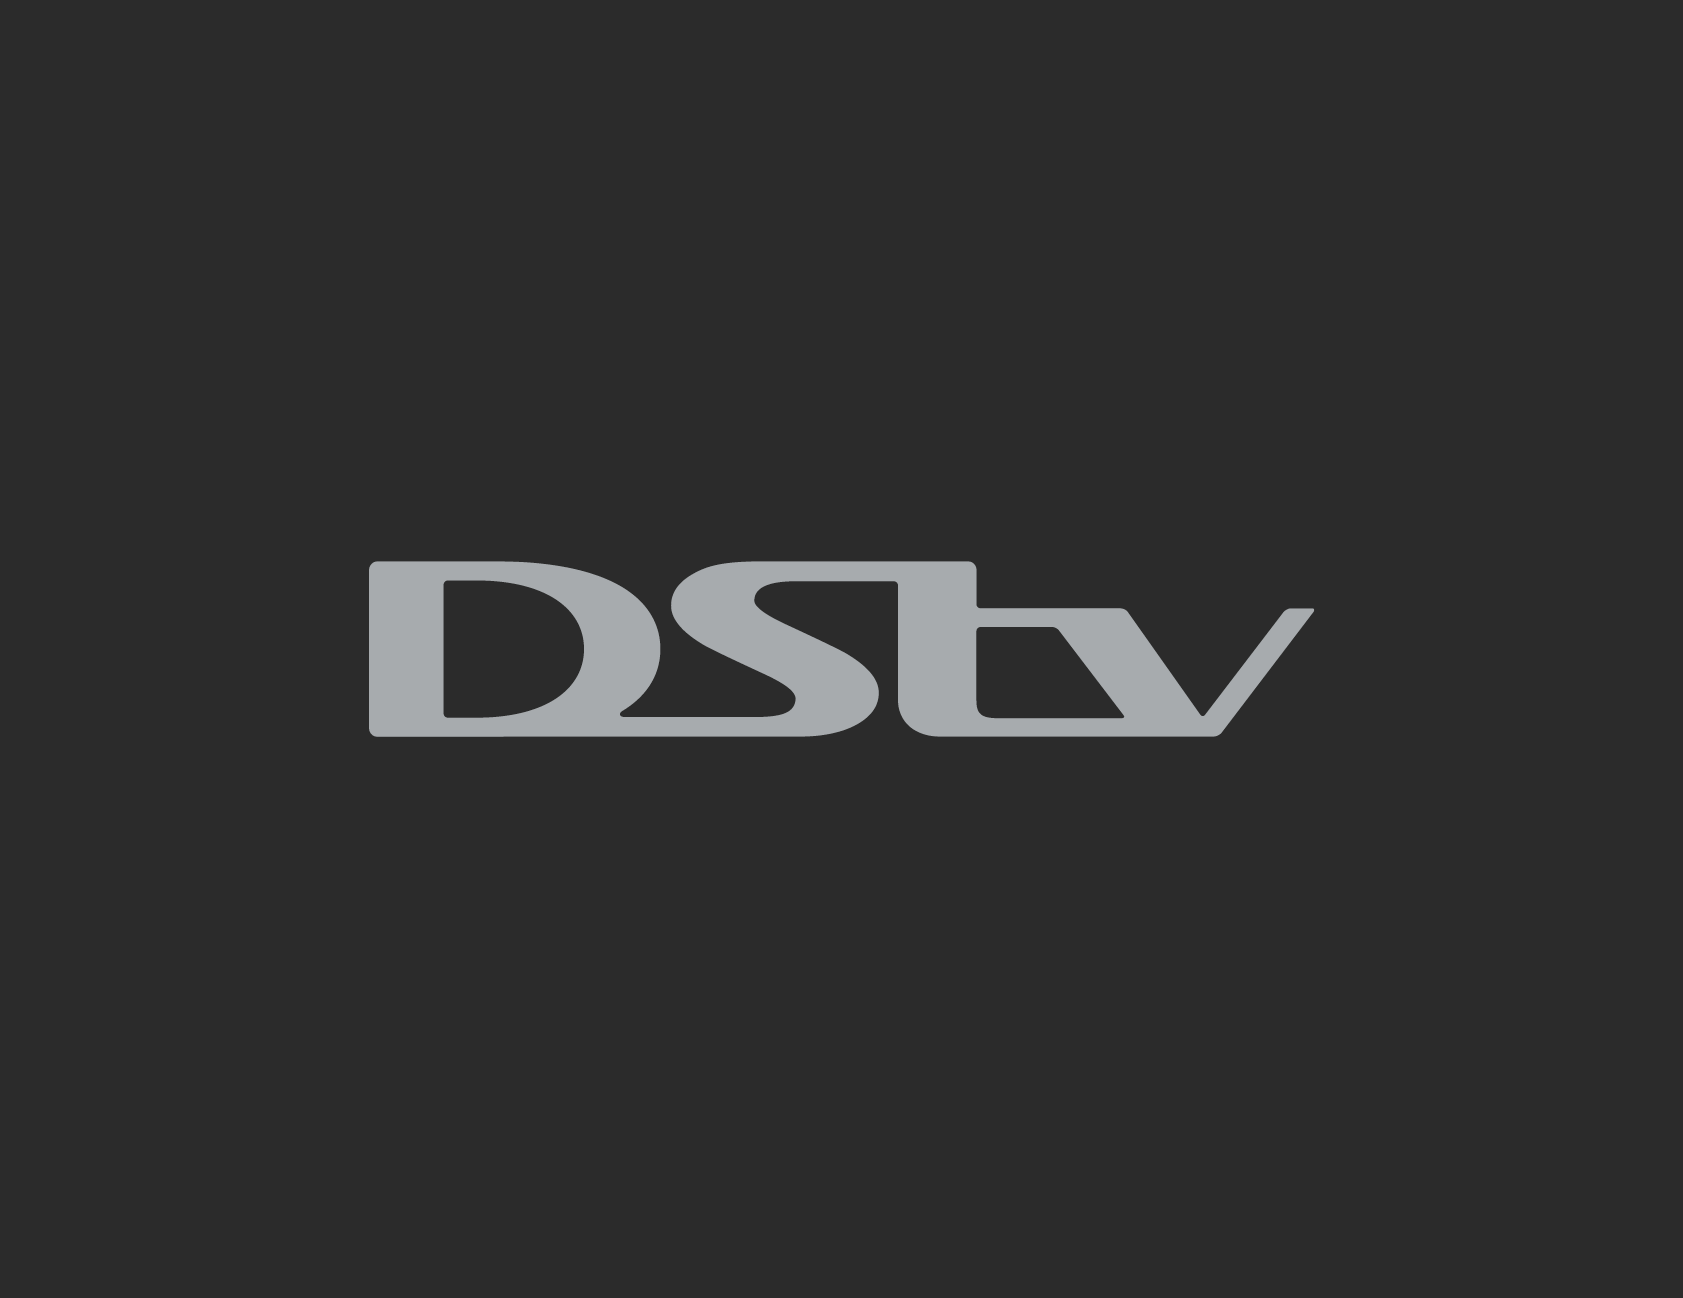 DSTV CHANNEL SURFING